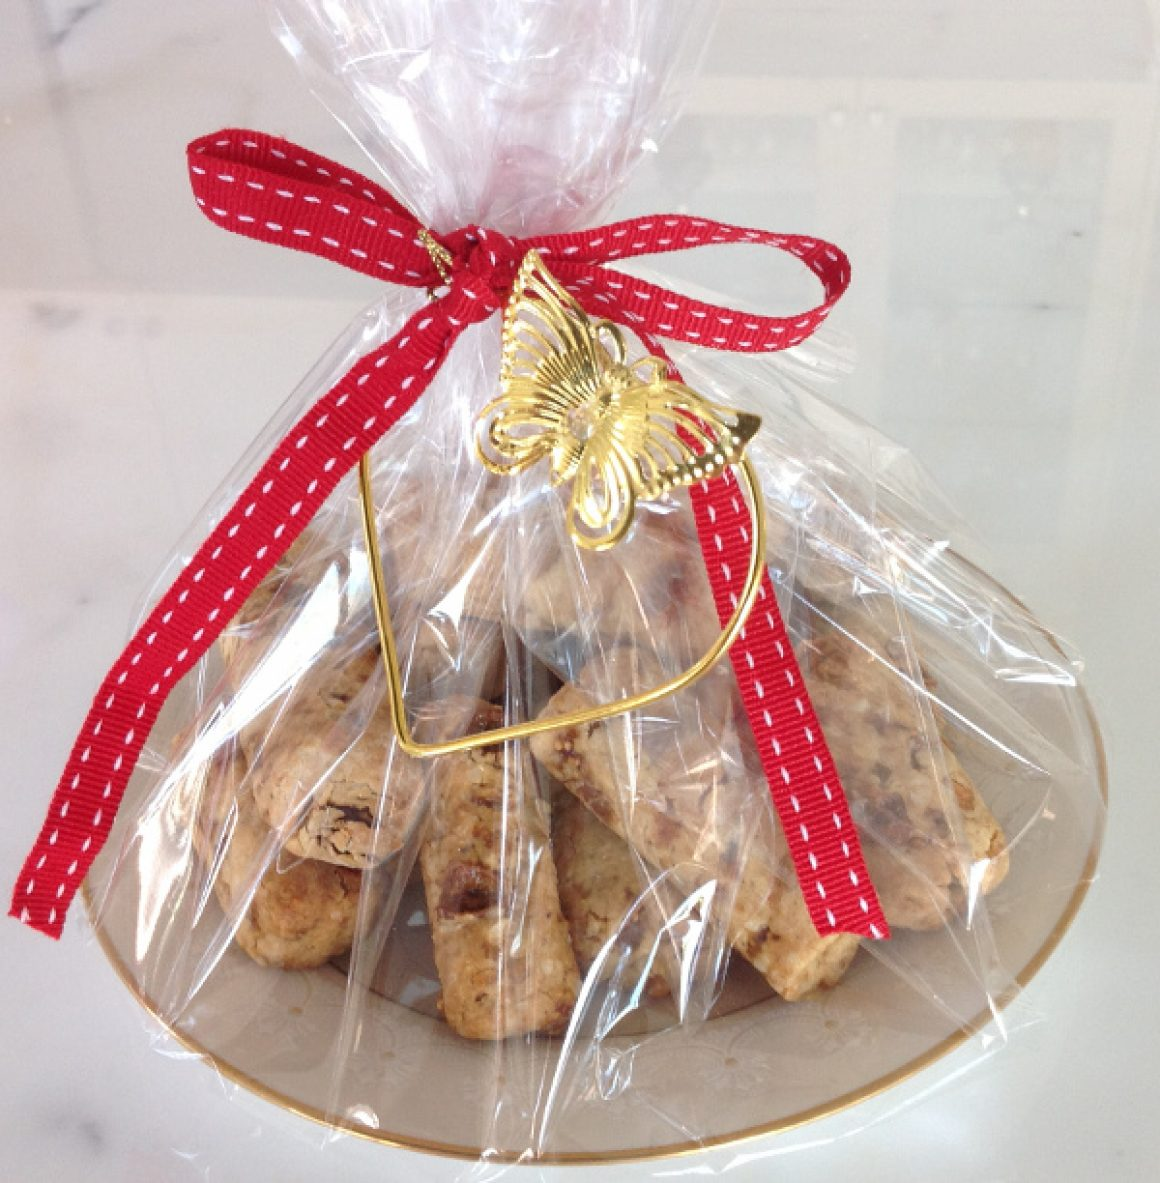 Vino Cotto Spiced Fruit and Nut Biscuits gift